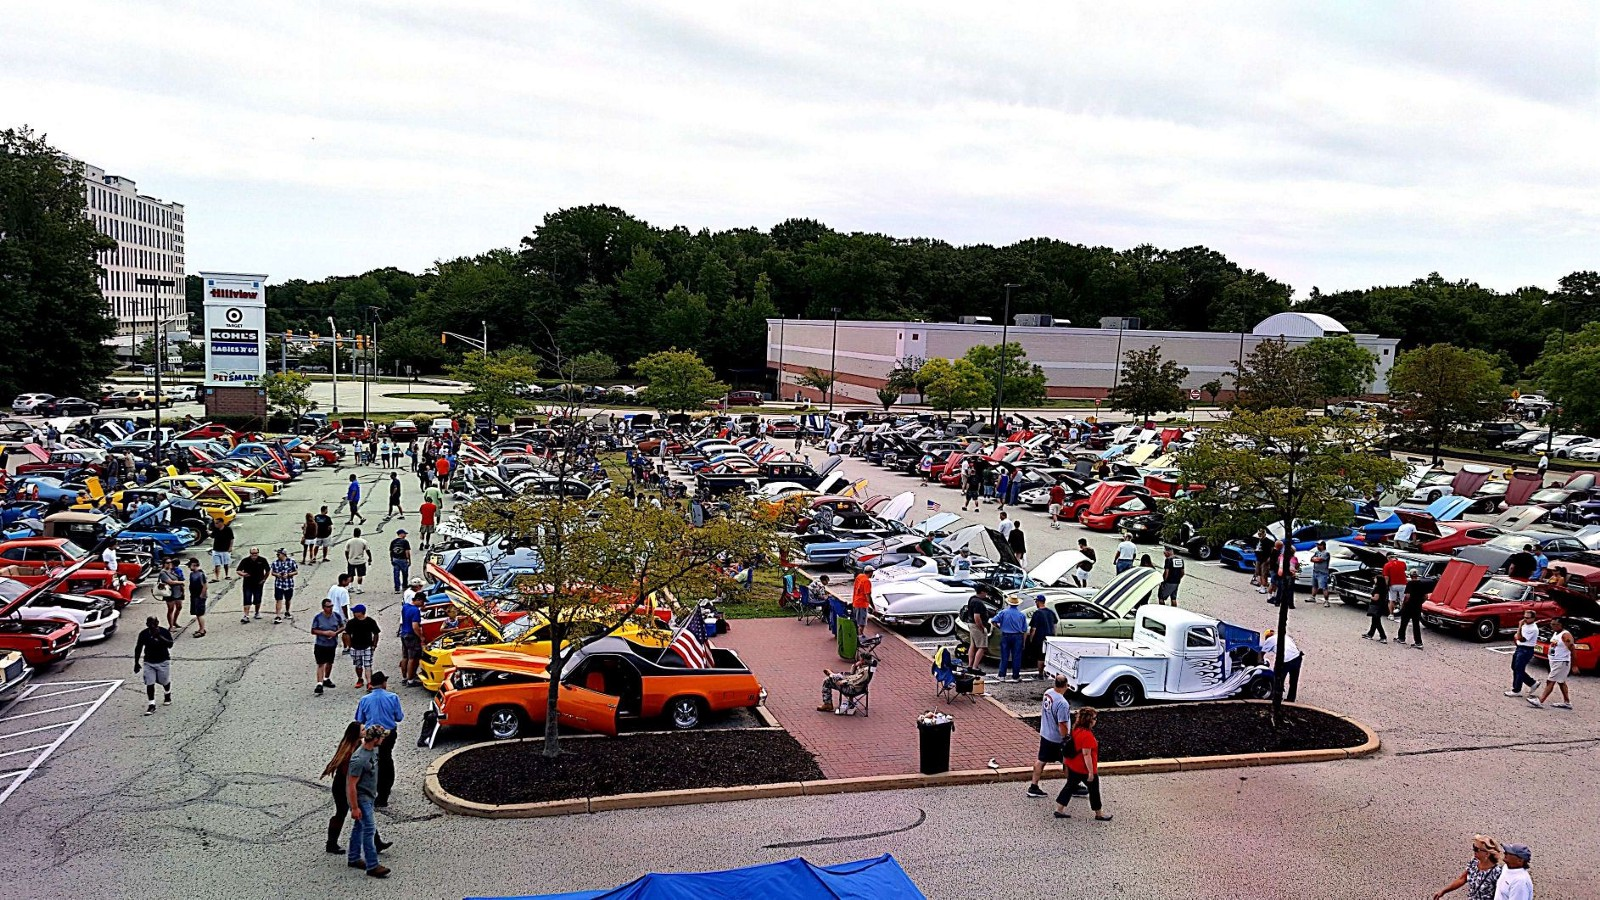 Labor Day Car Show Taking Place At Silver Diner Next Week - When is the next car show